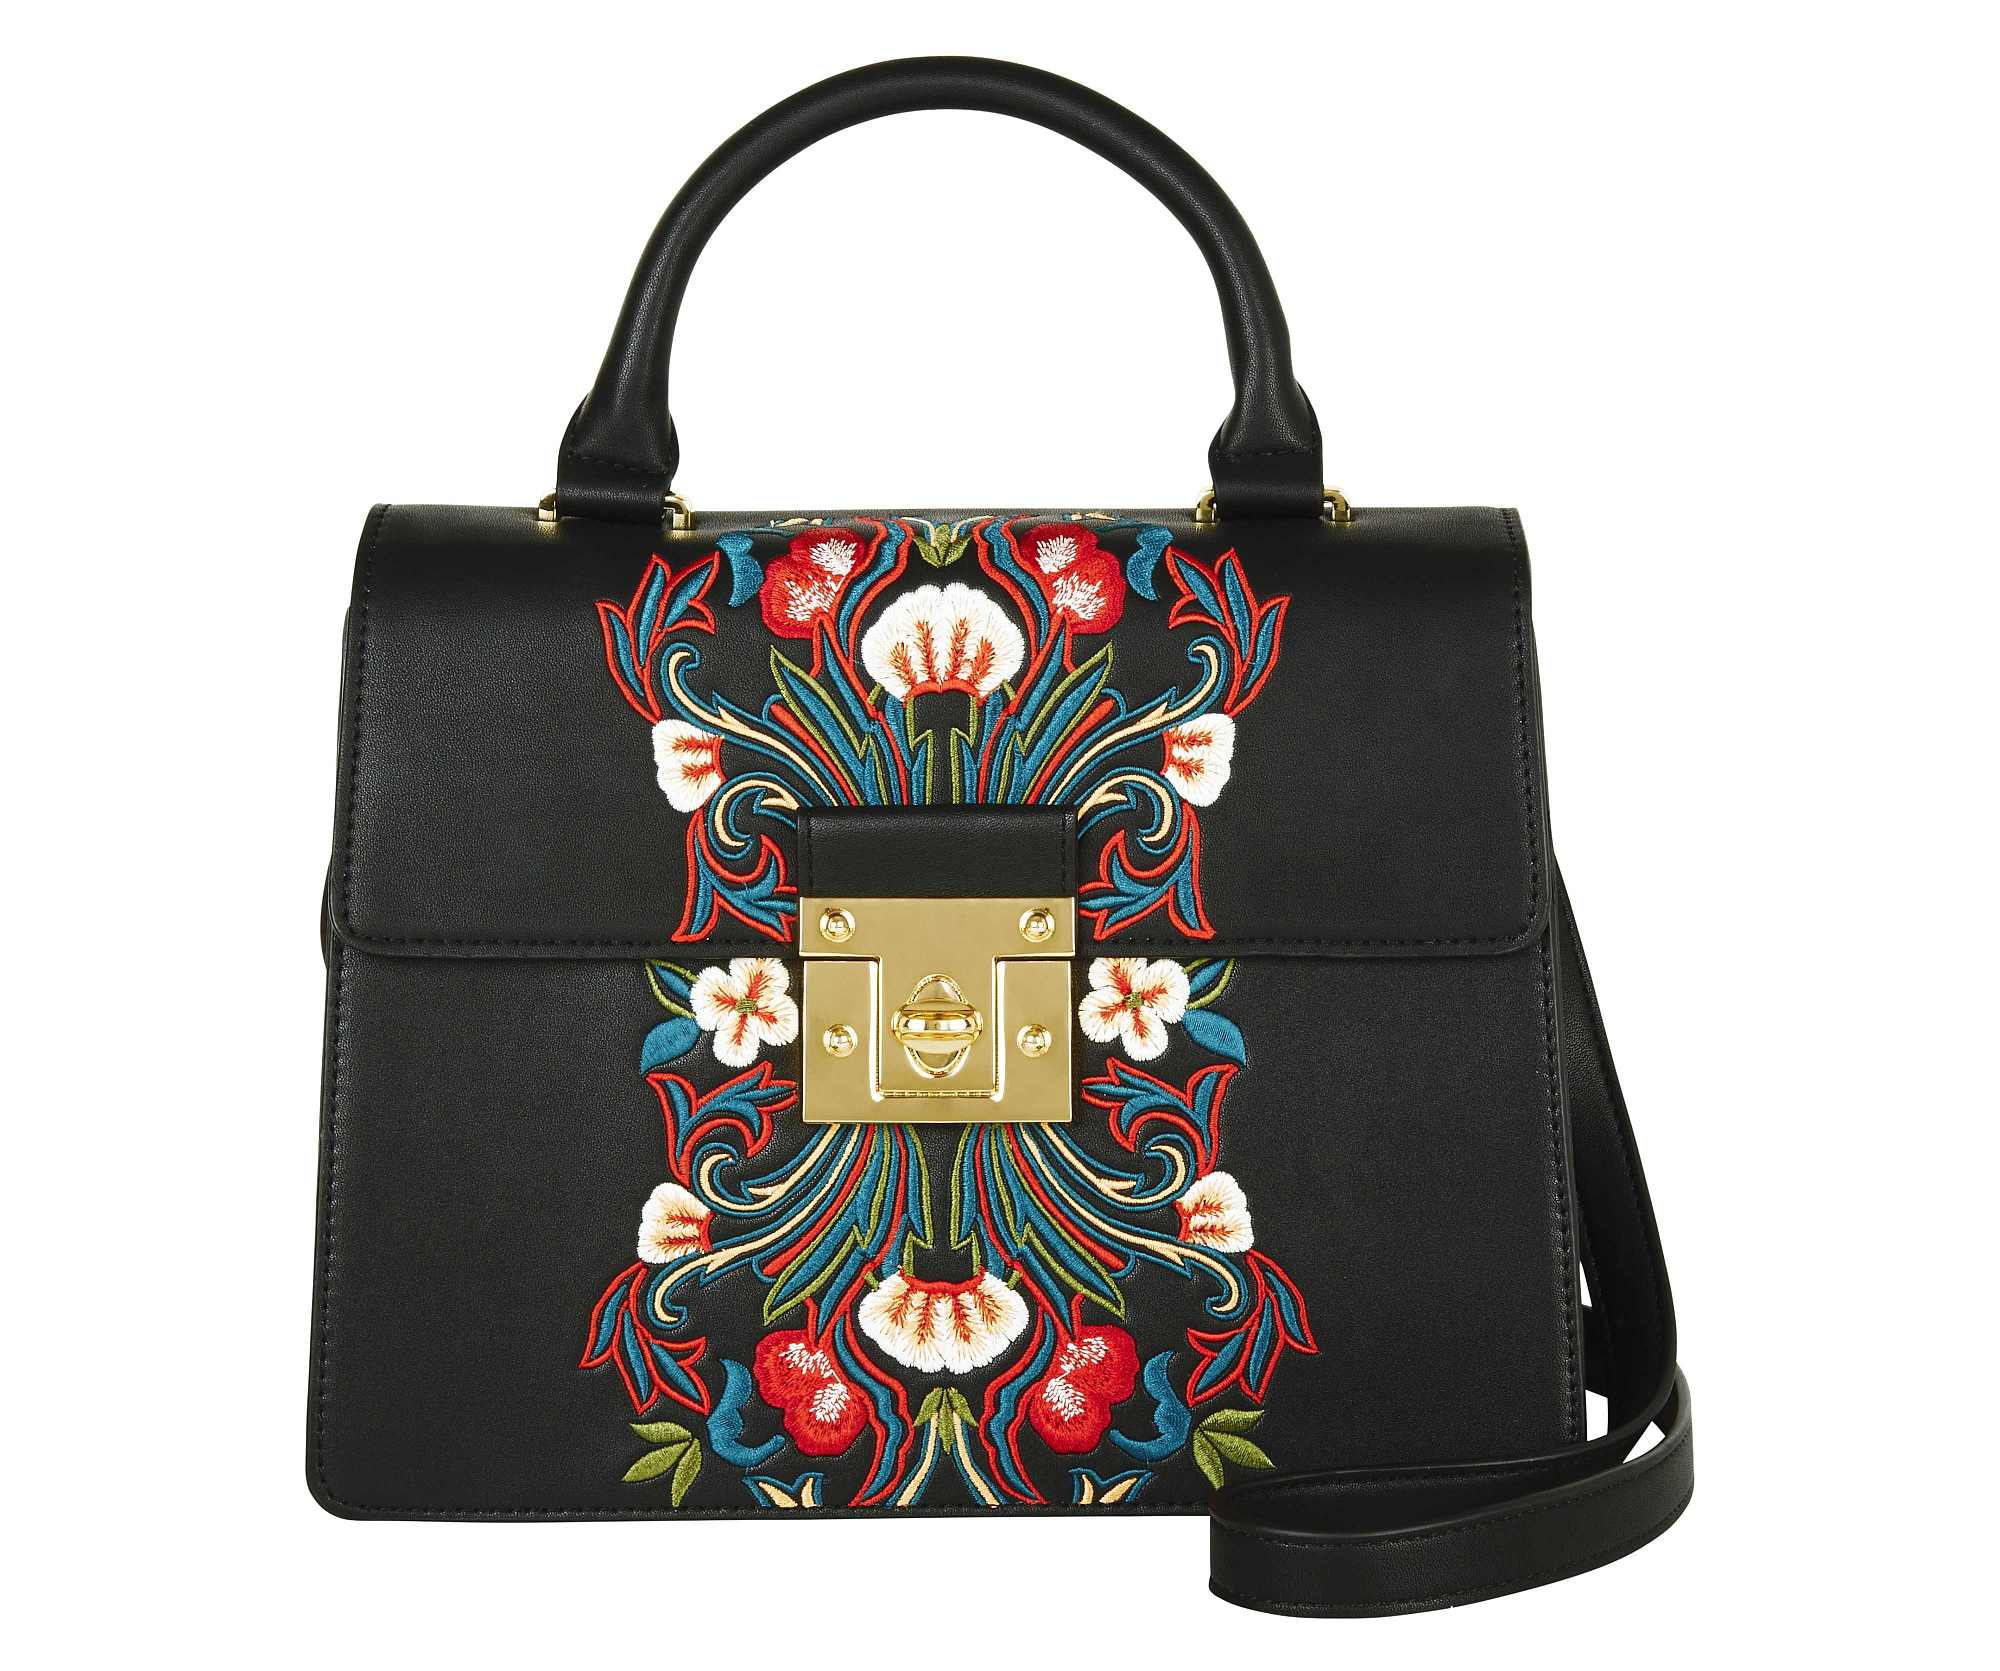 Marks and Spencer Collection Faux Leather Embroidered Tote Bag, £45